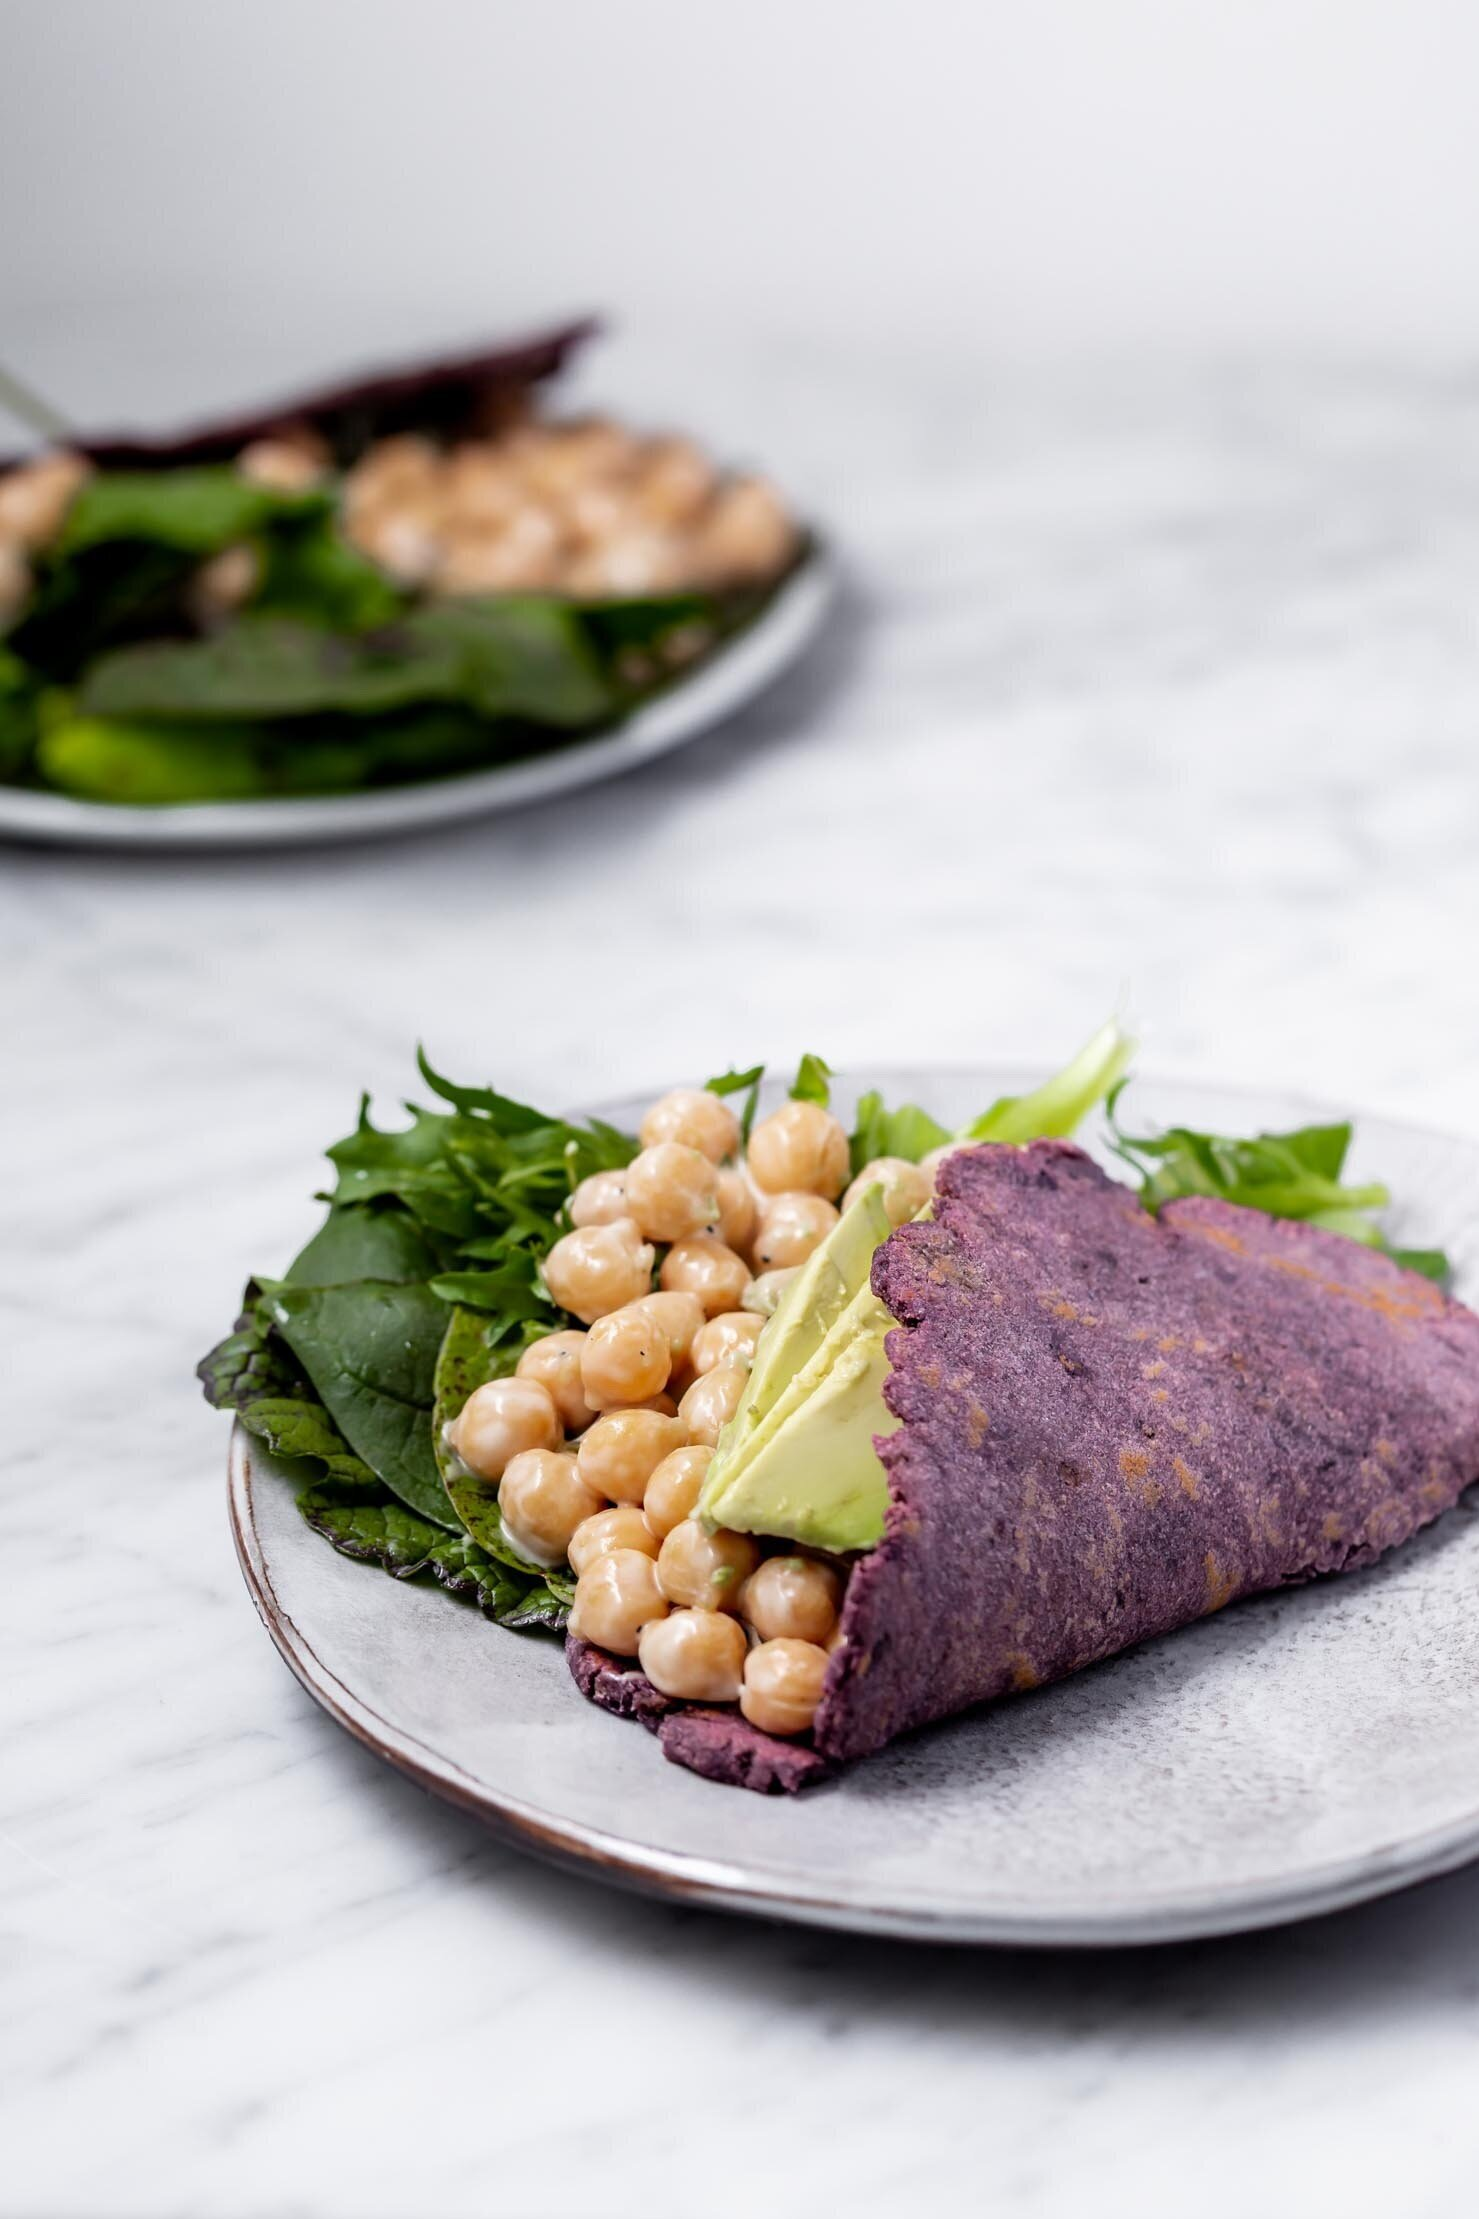 These Easy Potato Flatbreads only require two pantry staple ingredients and make great wraps, tortillas, naan, and pizza crust. By Kari of Beautiful Ingredient. #flatbread #homemade #potato #twoingredientrecipe #easyrecipe #vegan #glutenfree #nutfree #yeastfree #tortilla #purple #pizzacrust #naan #quickbread